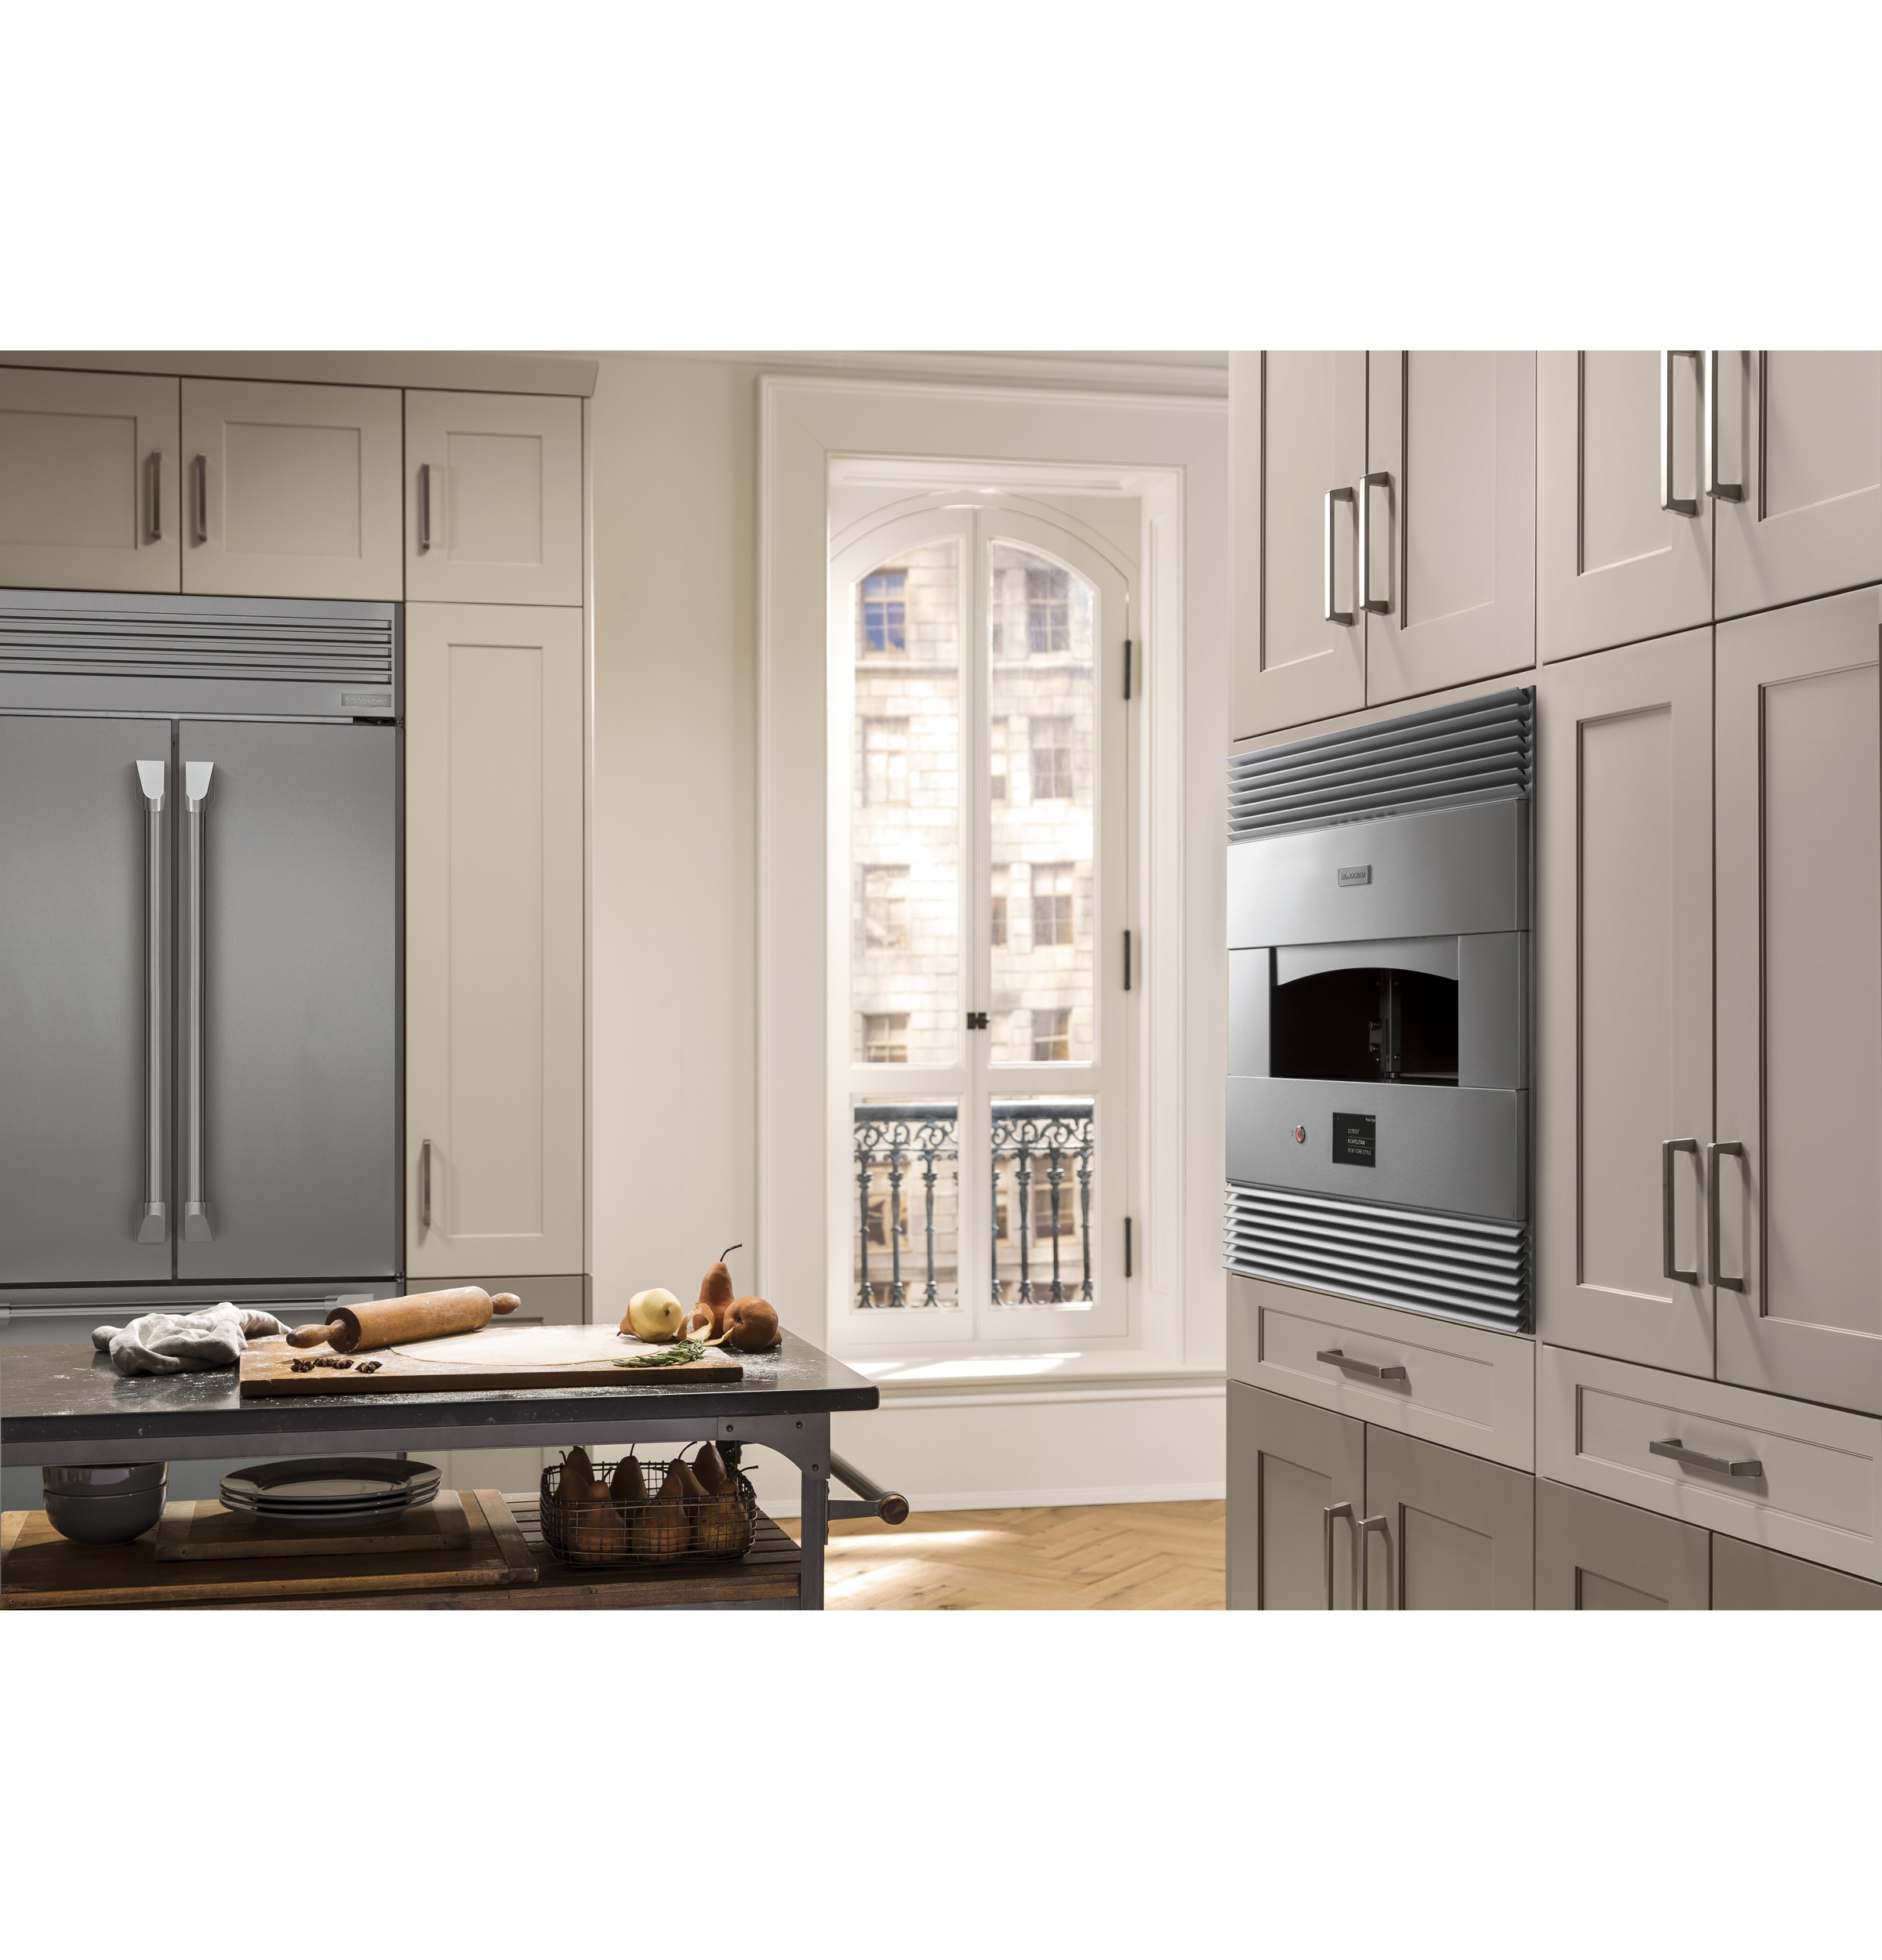 Monogram Hearth Oven Adds Sophisticated Flavor To Luxury